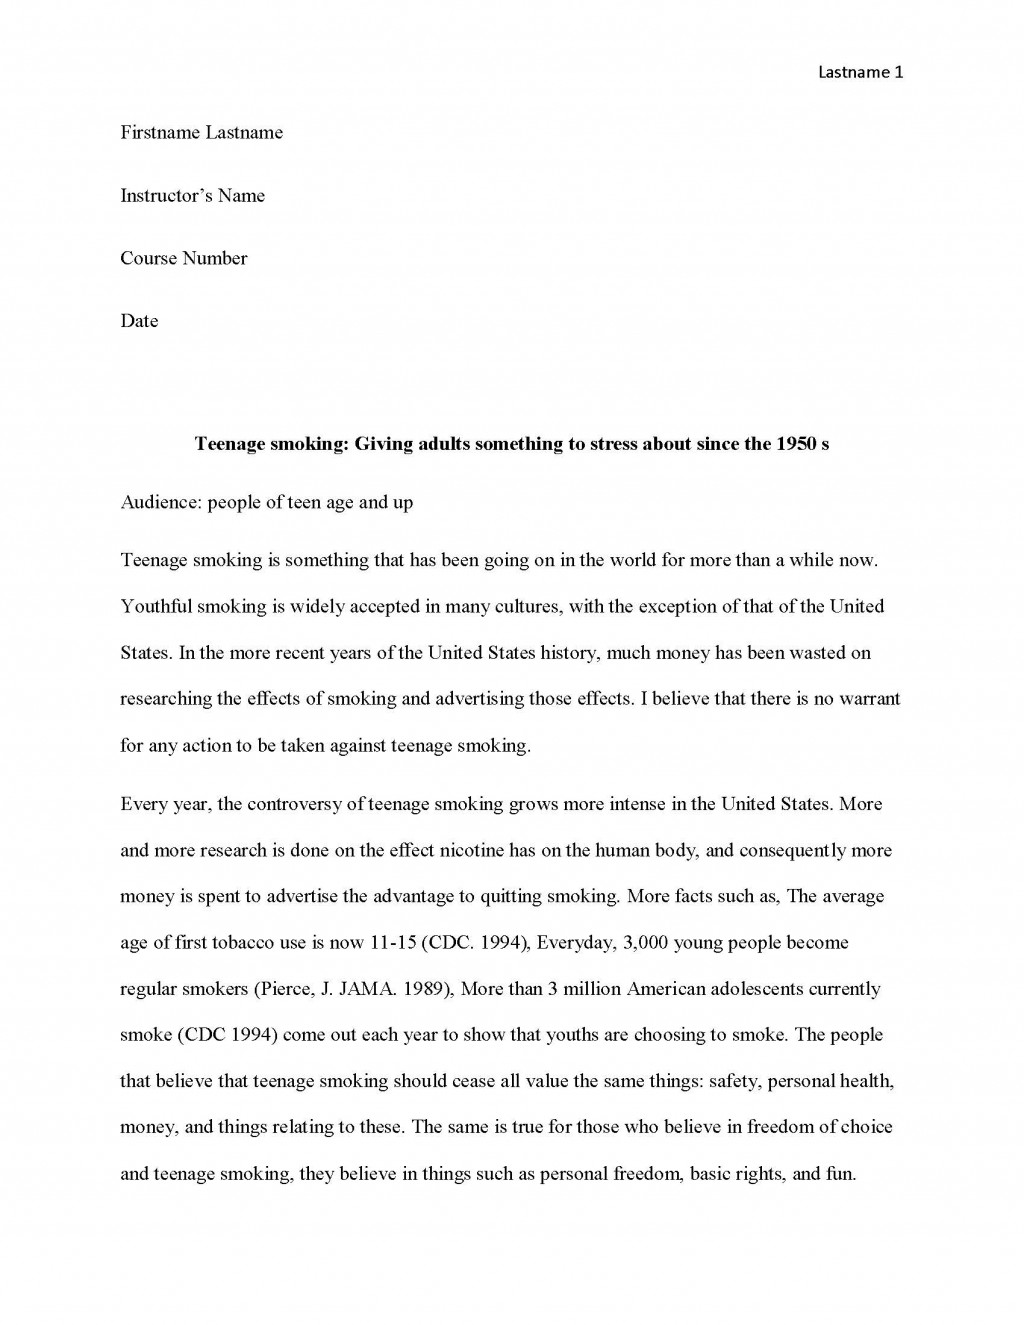 016 College Essay Prompt Examples Example Teen Smoking Free Sample Page 1 Unforgettable Uc #1 5 Large